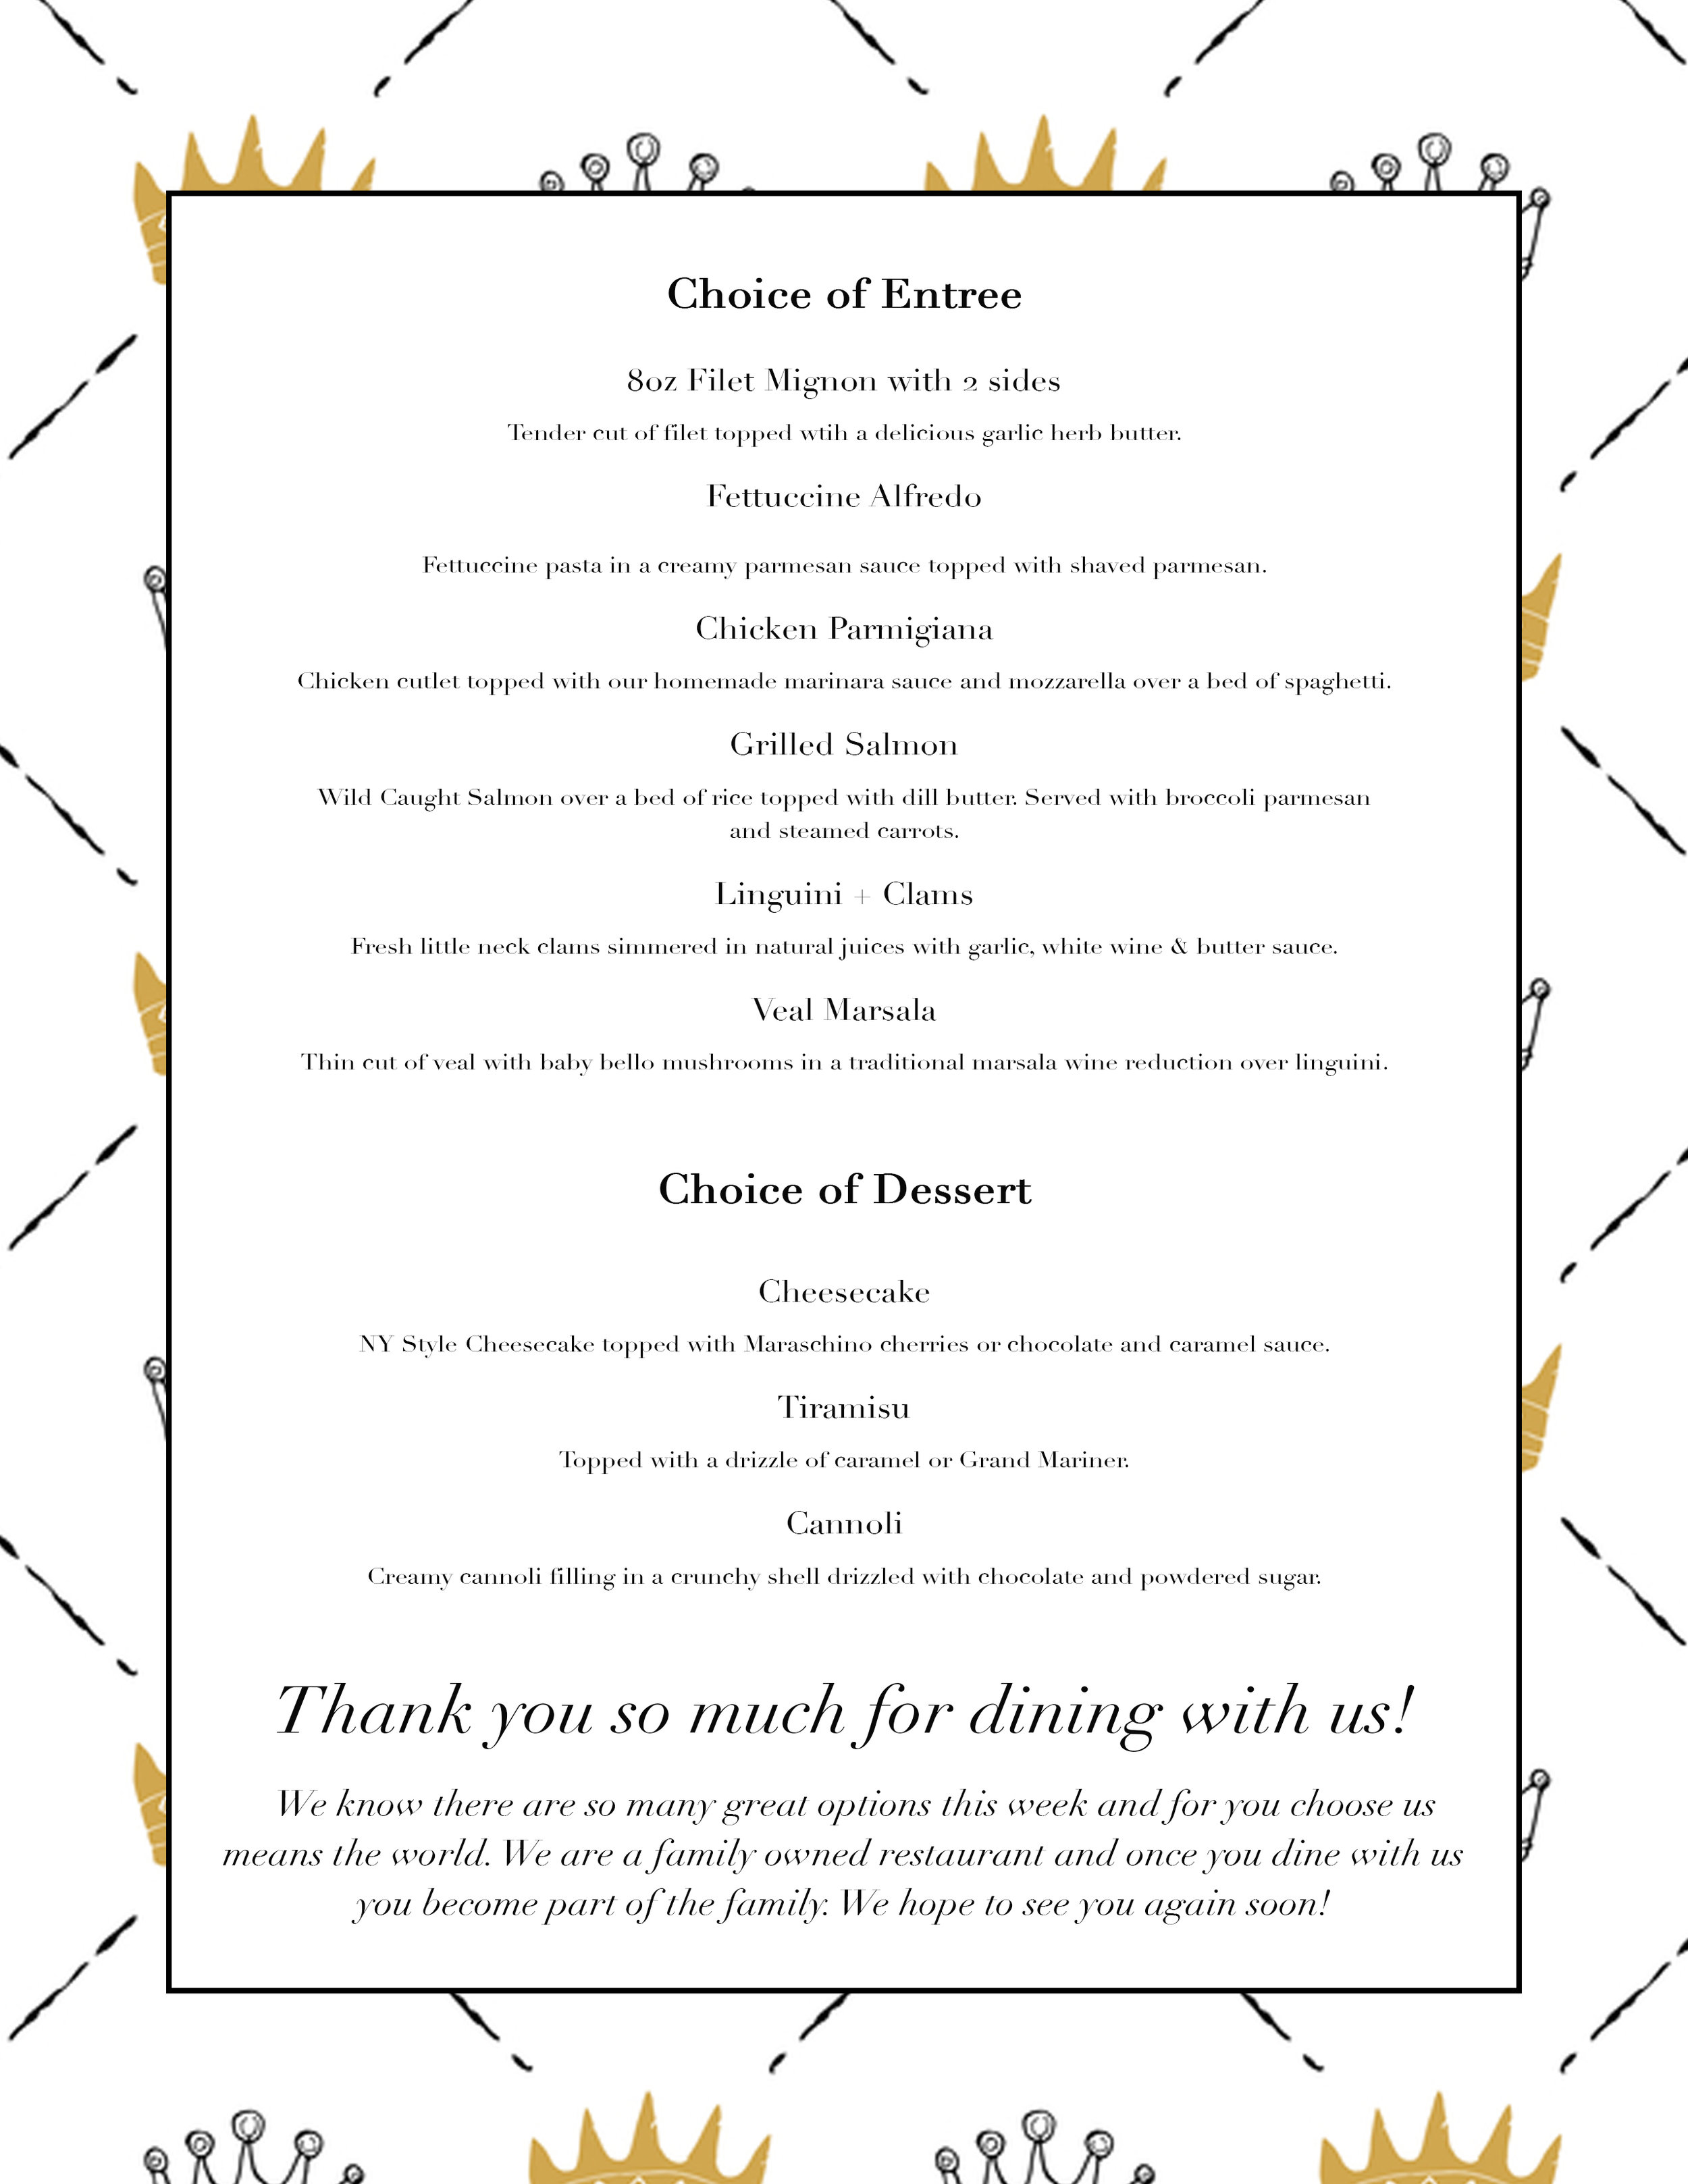 queens feast menu revised back.jpg